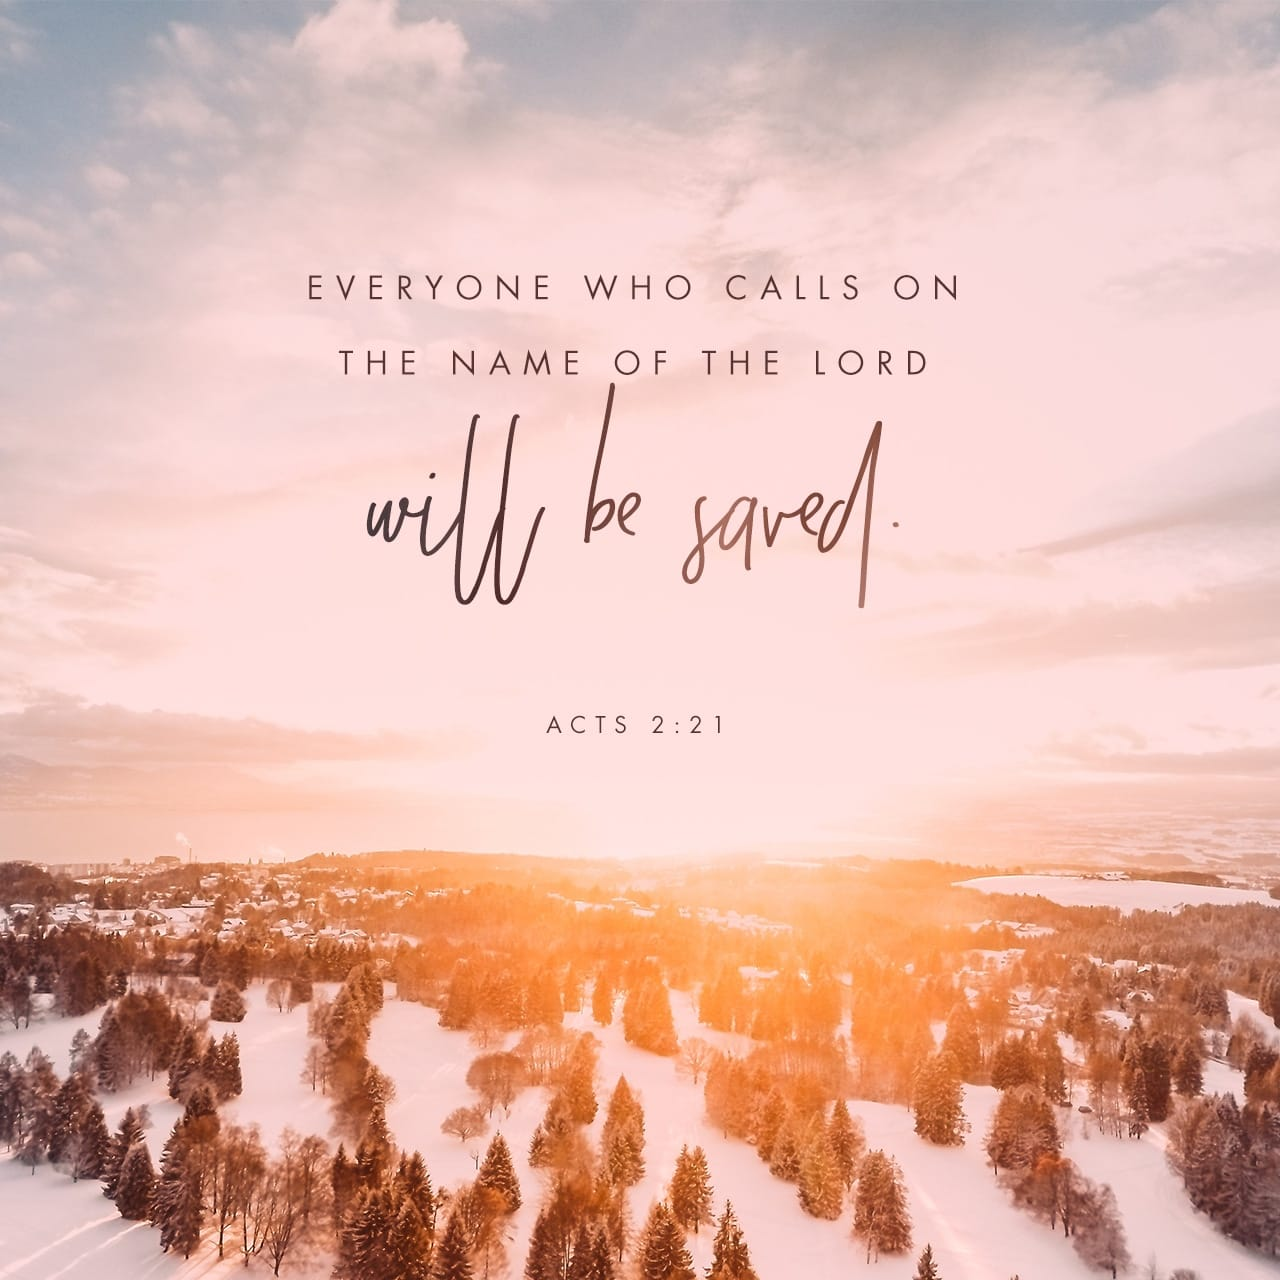 Acts 2:21 And it shall come to pass, that whosoever shall call on the name of the Lord shall be saved. | King James Version (KJV)